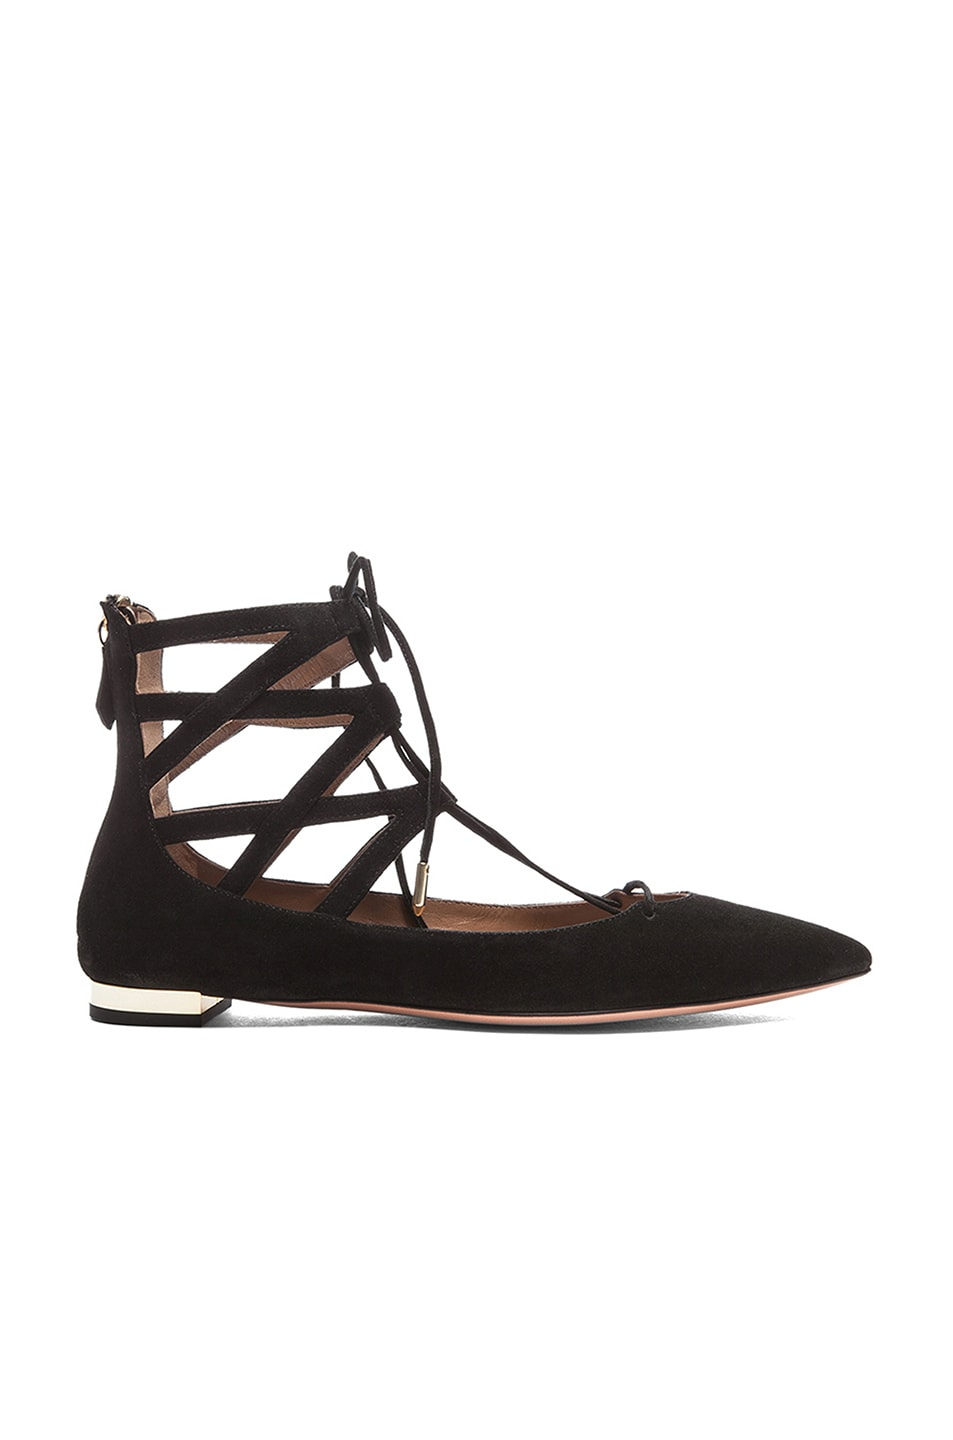 Image 1 of Aquazzura Belgravia Suede Flats in Black